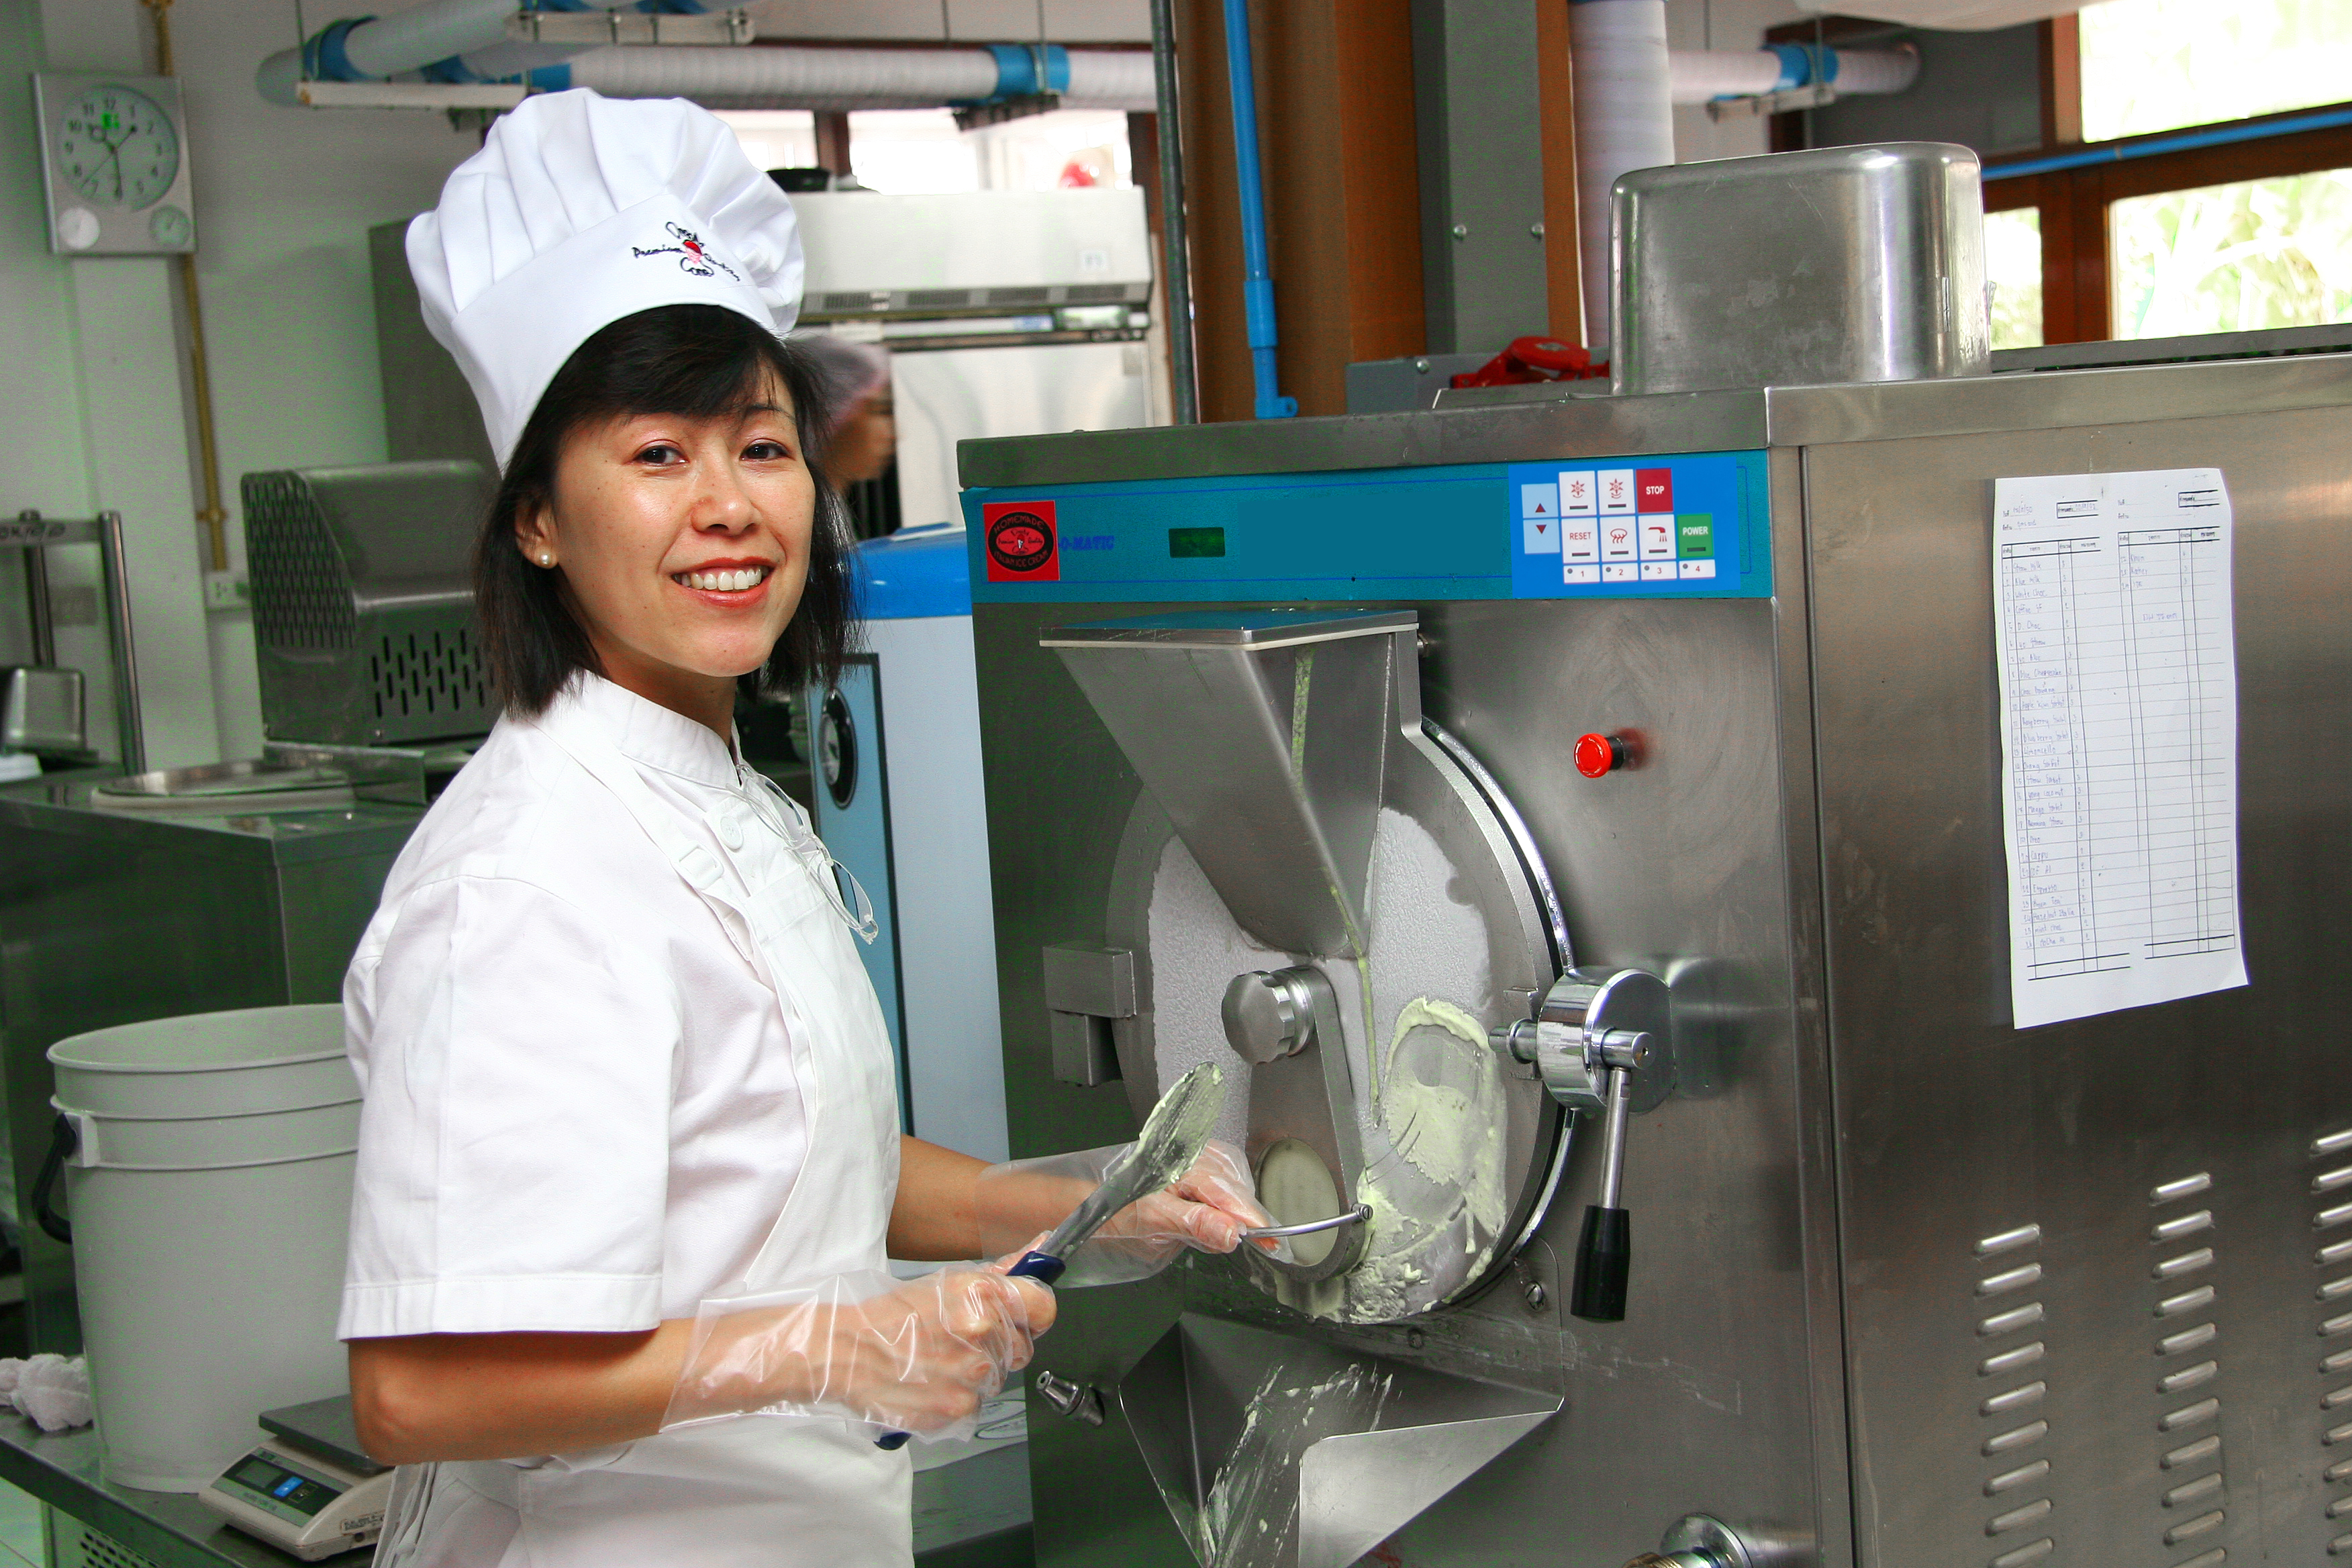 Ice Cream machine training: student working batch freezer